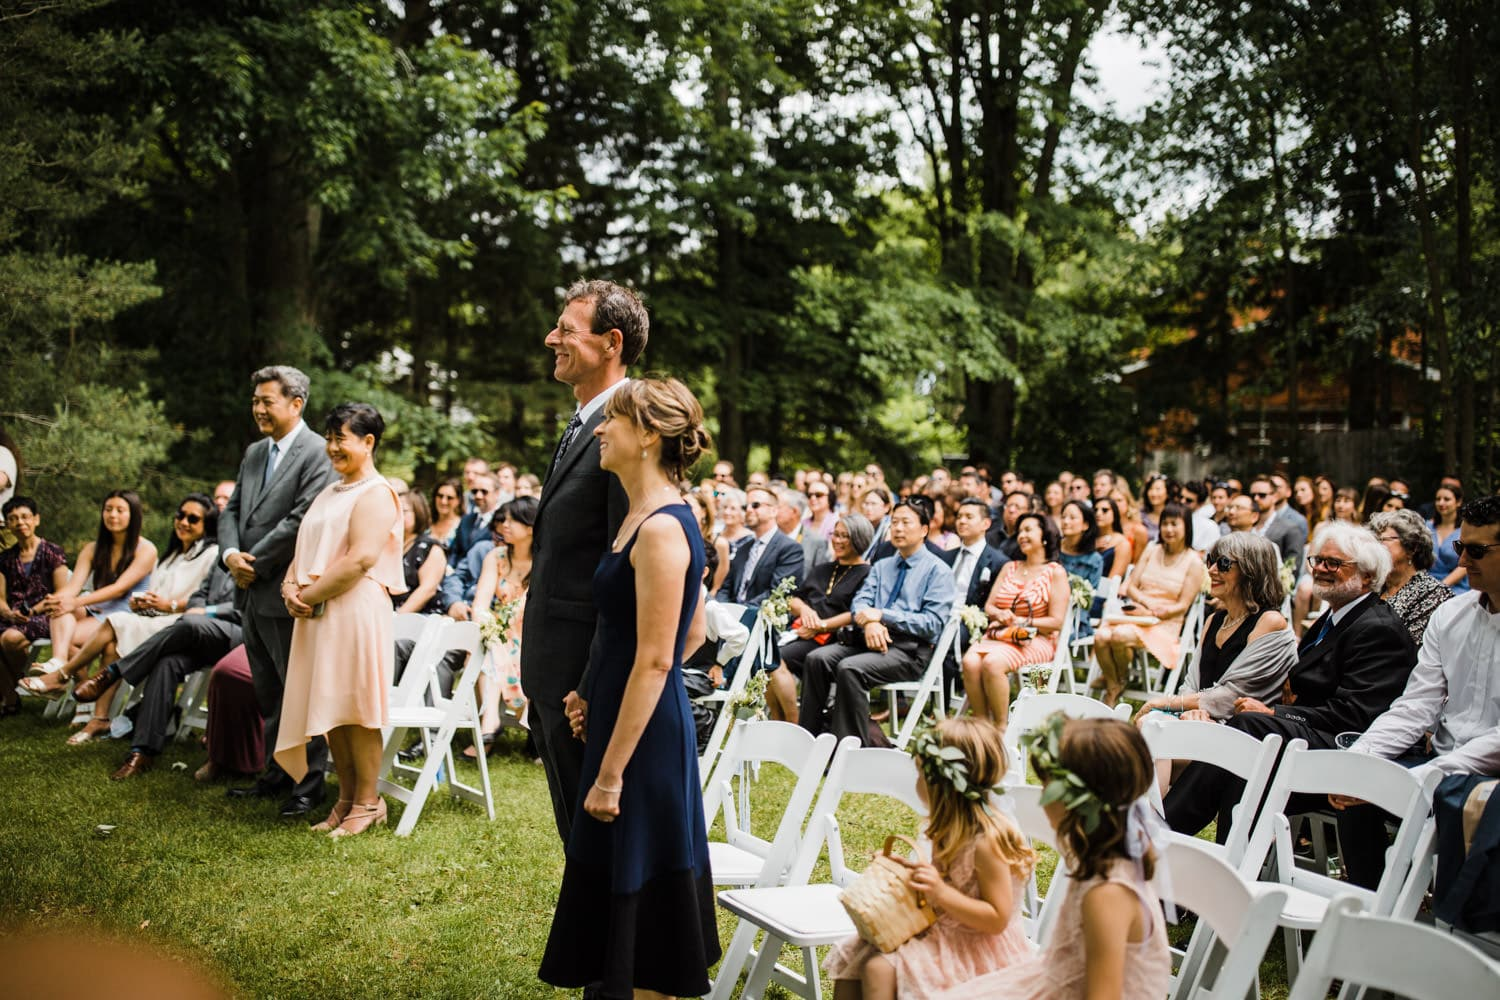 guests enjoy a backyard wedding ceremony